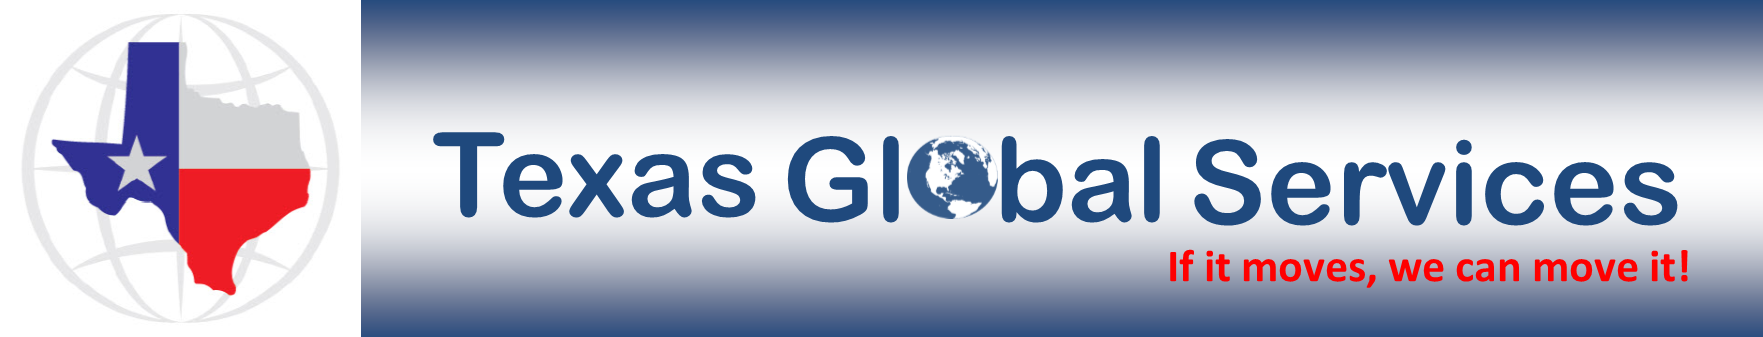 International Shipping Houston - Texas Global Services Logo and Tagline